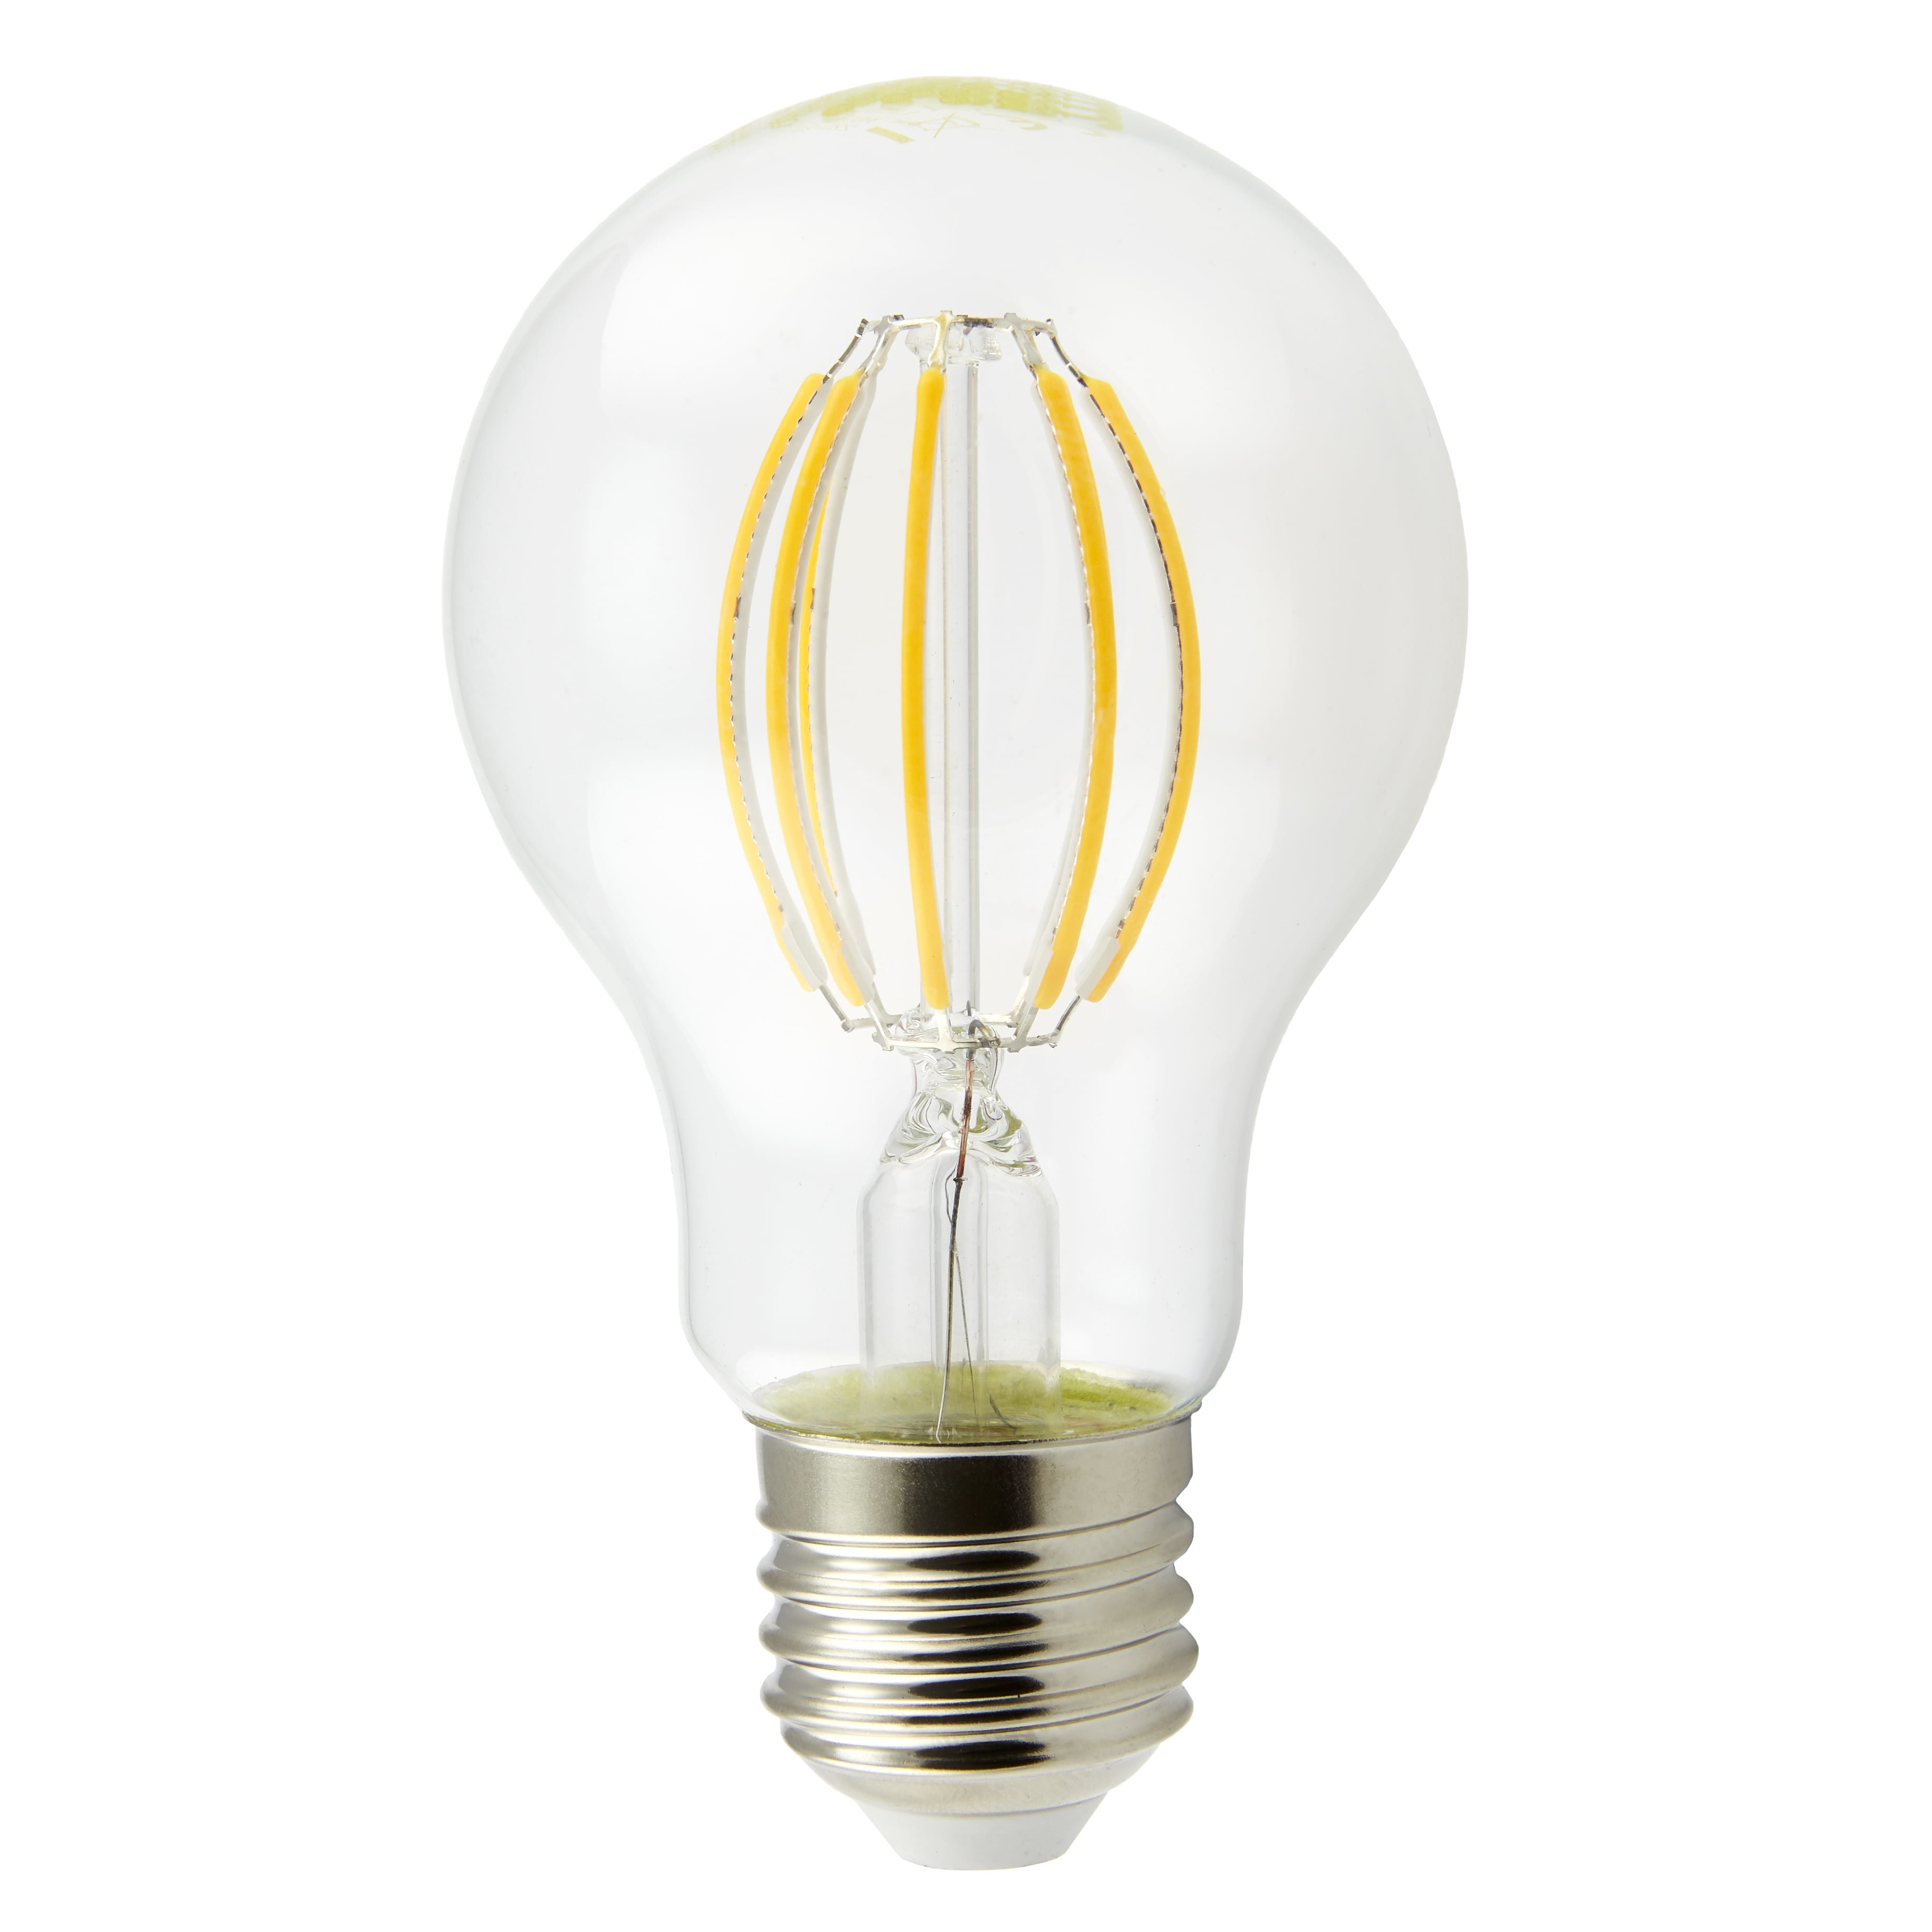 cfl me led bulb lamp bulbs most near light design electric specialty wicked can